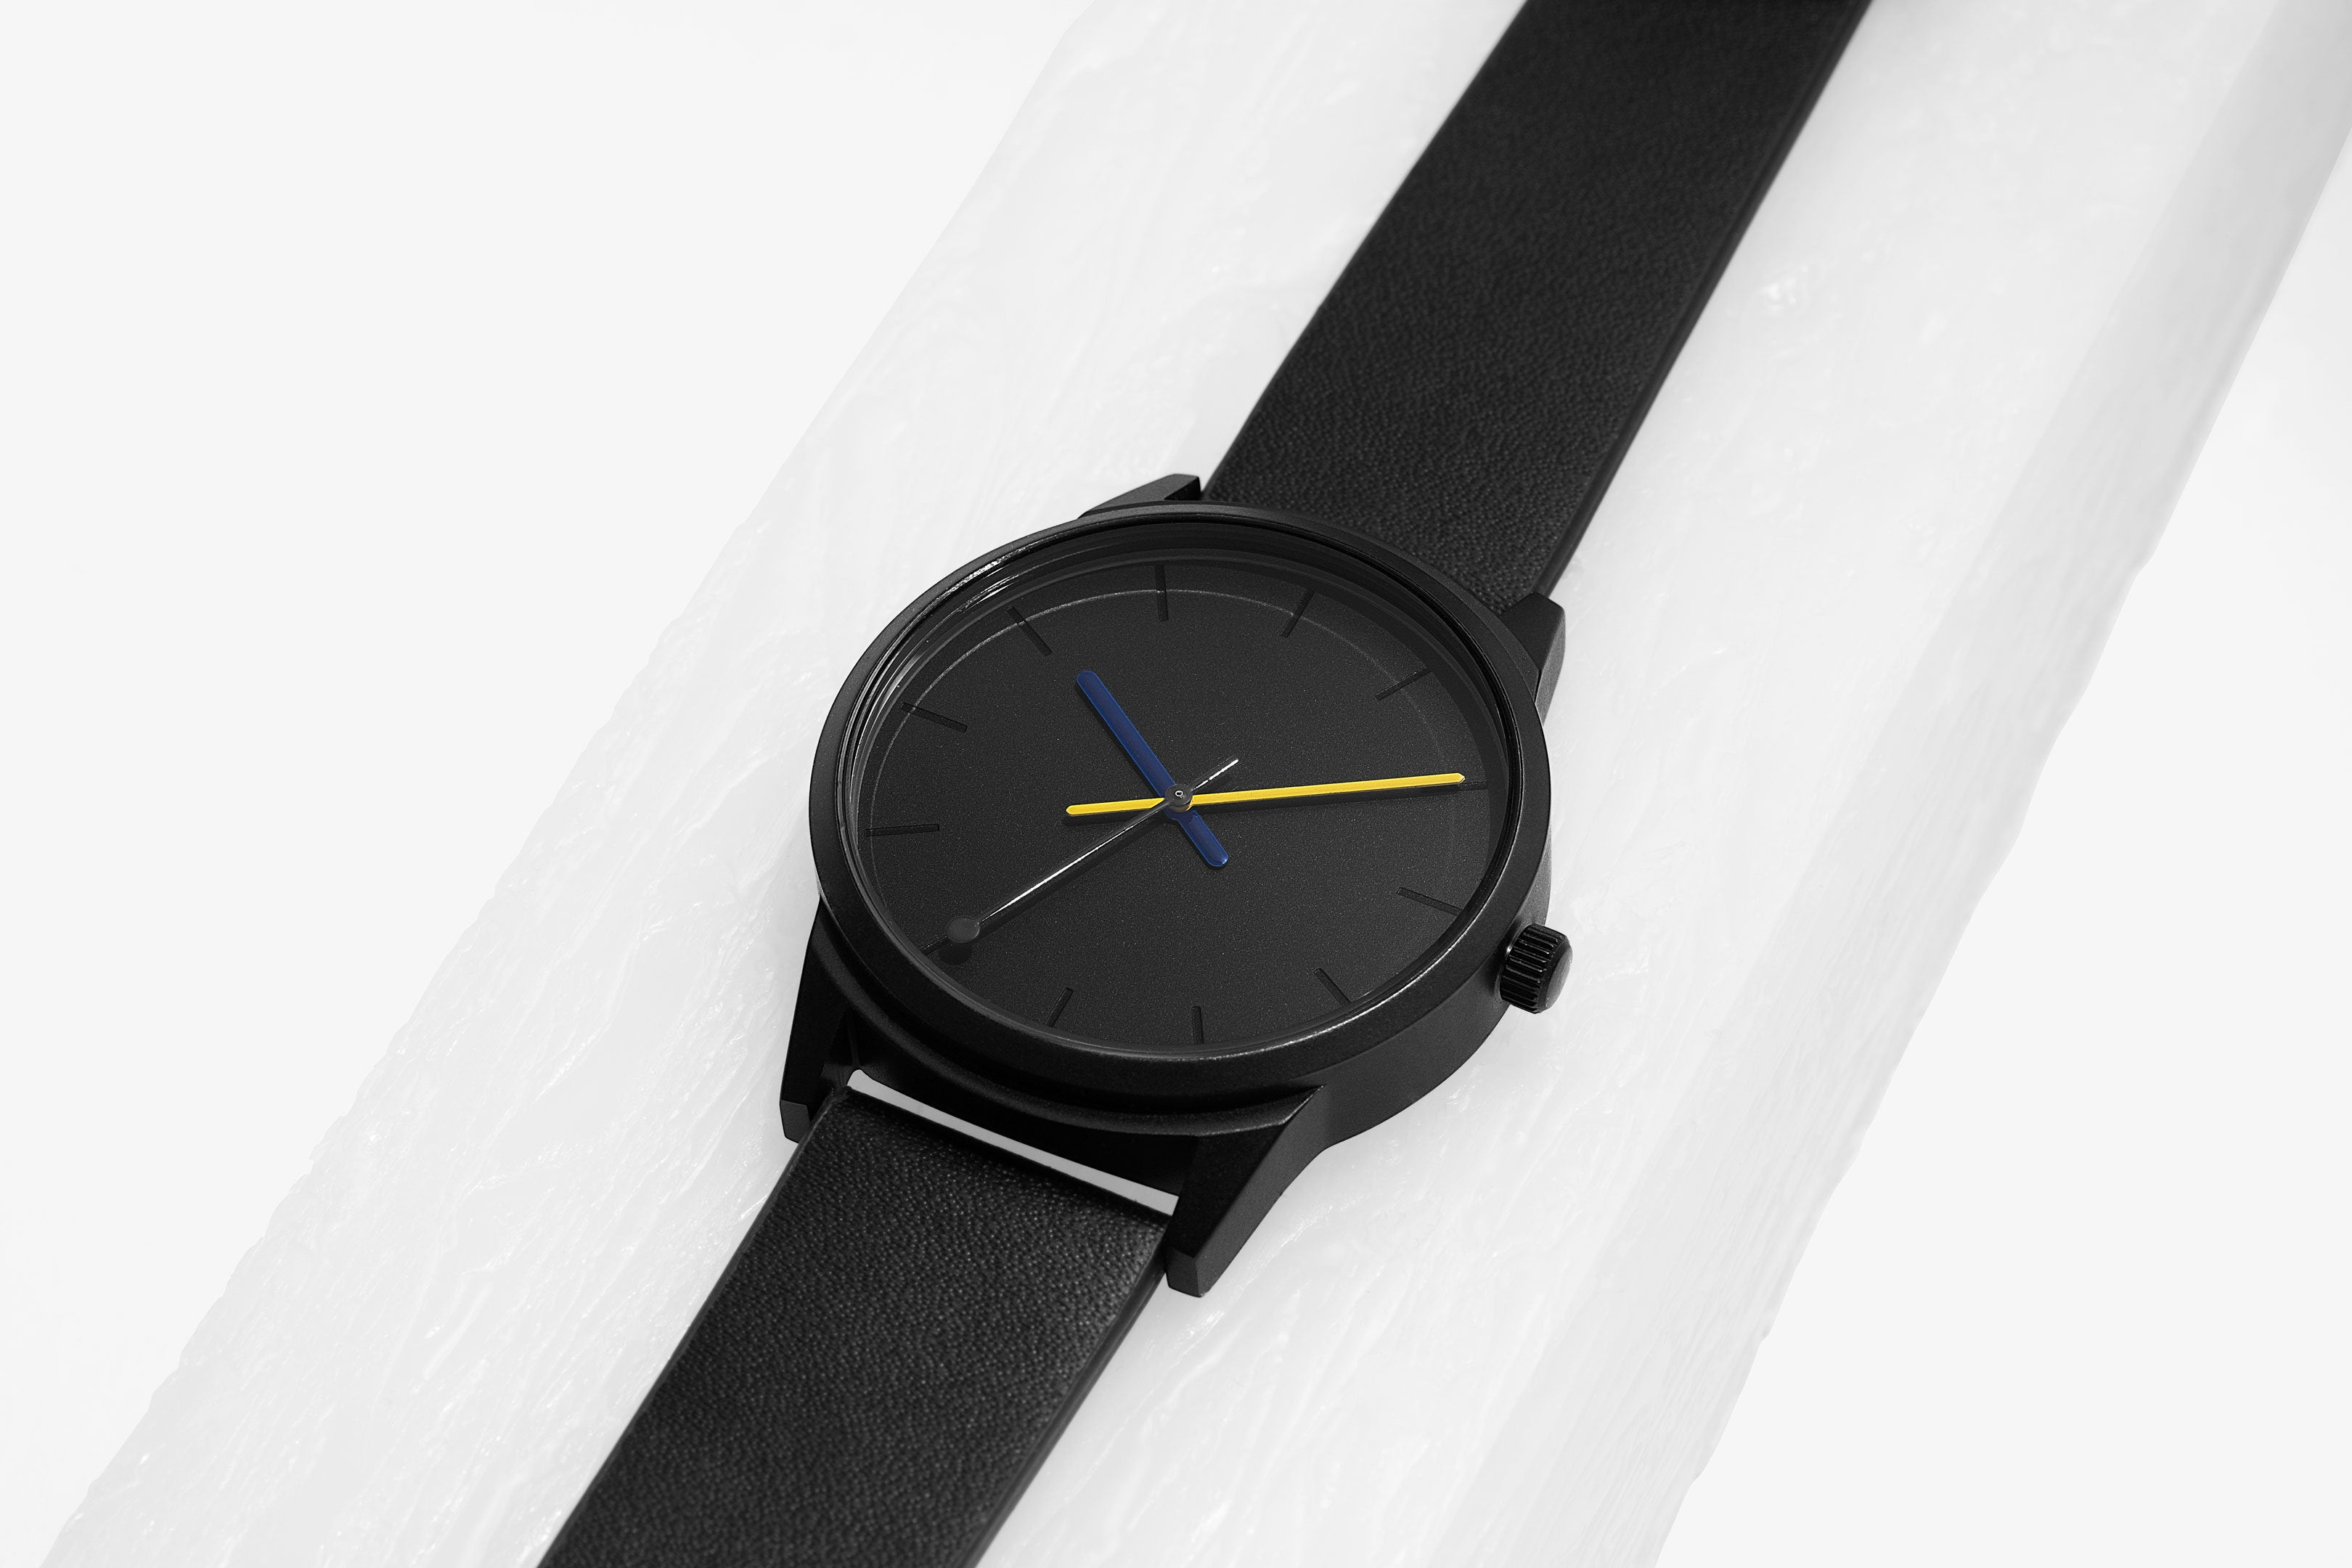 //cdn.shopify.com/s/files/1/0879/6650/products/breda-poketo-5021a-spectra-black-leather-band-collaboration-watch-front-holiday-2018-1_1024x1024.jpg?v=1557421007